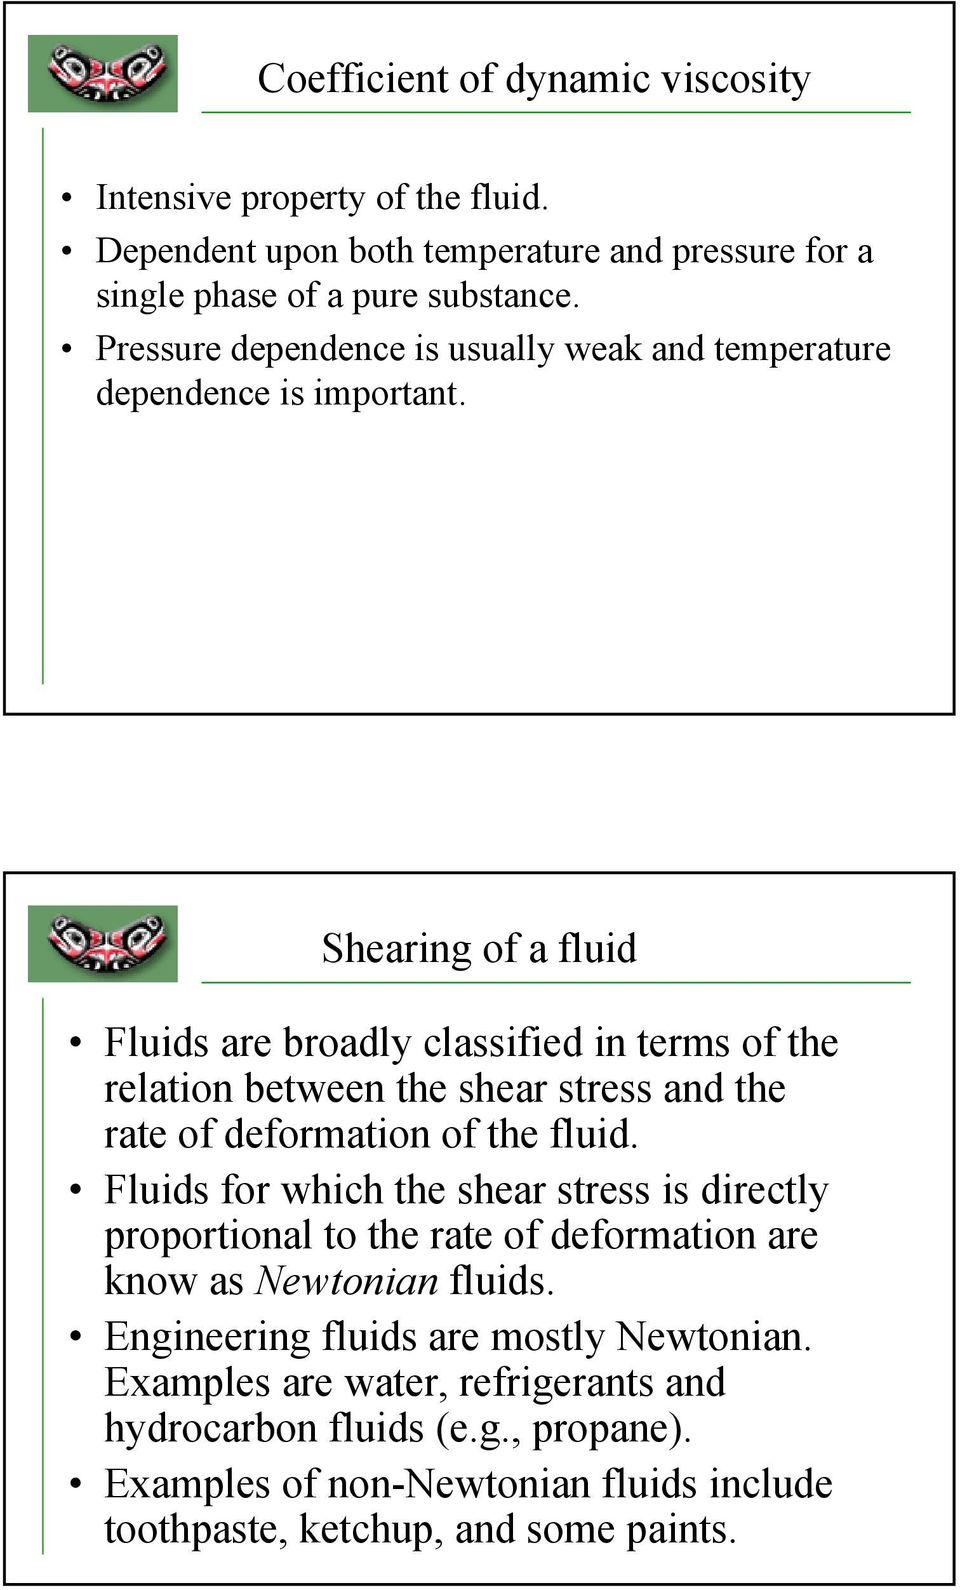 Shearing of a fluid Fluids are broadly classified in terms of the relation between the shear stress and the rate of deformation of the fluid.